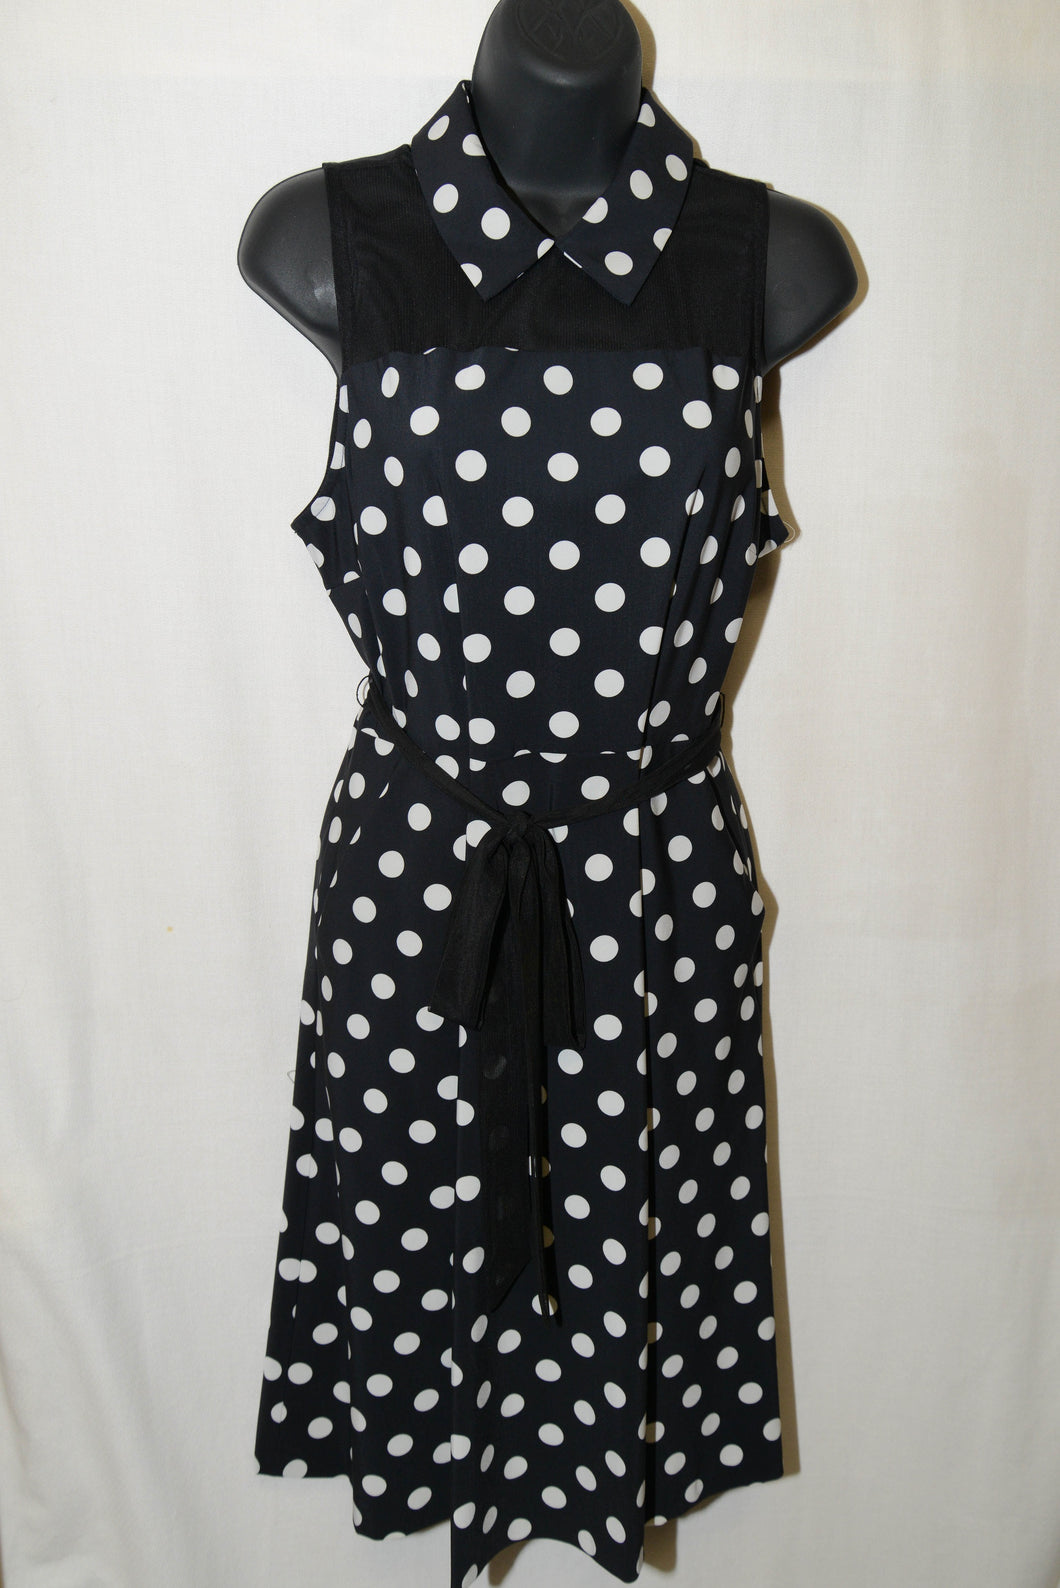 SALE - Tristan Polka Dot Dress